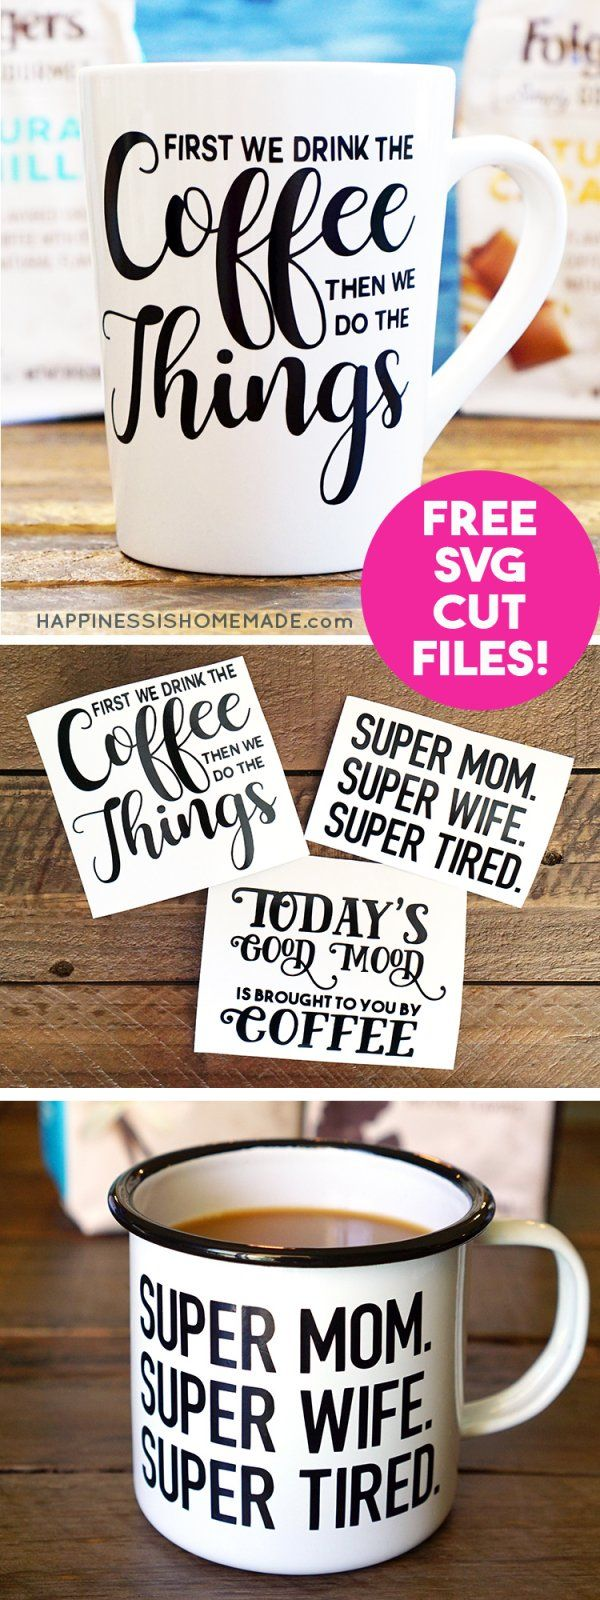 DIY Funny Coffee Mugs + Free SVG Cut Files